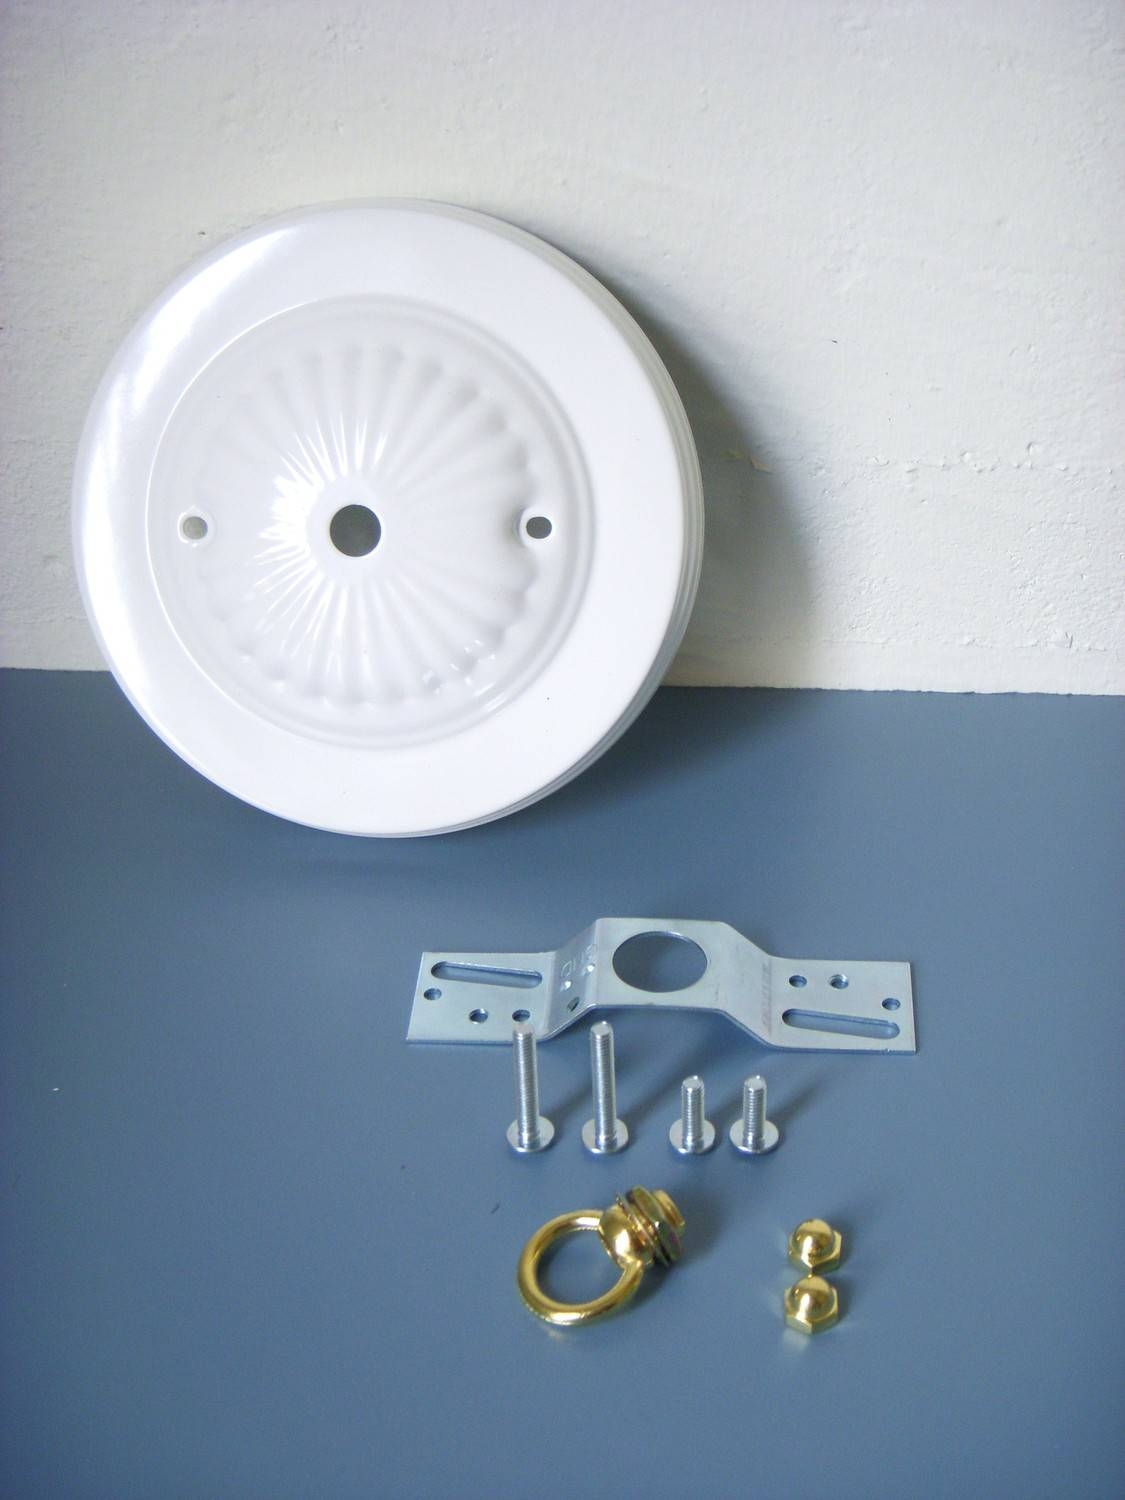 Diy Decorative Bright White Embossed Ceiling Canopy Plate intended for Pendant Lights Cover Plate (Image 8 of 15)